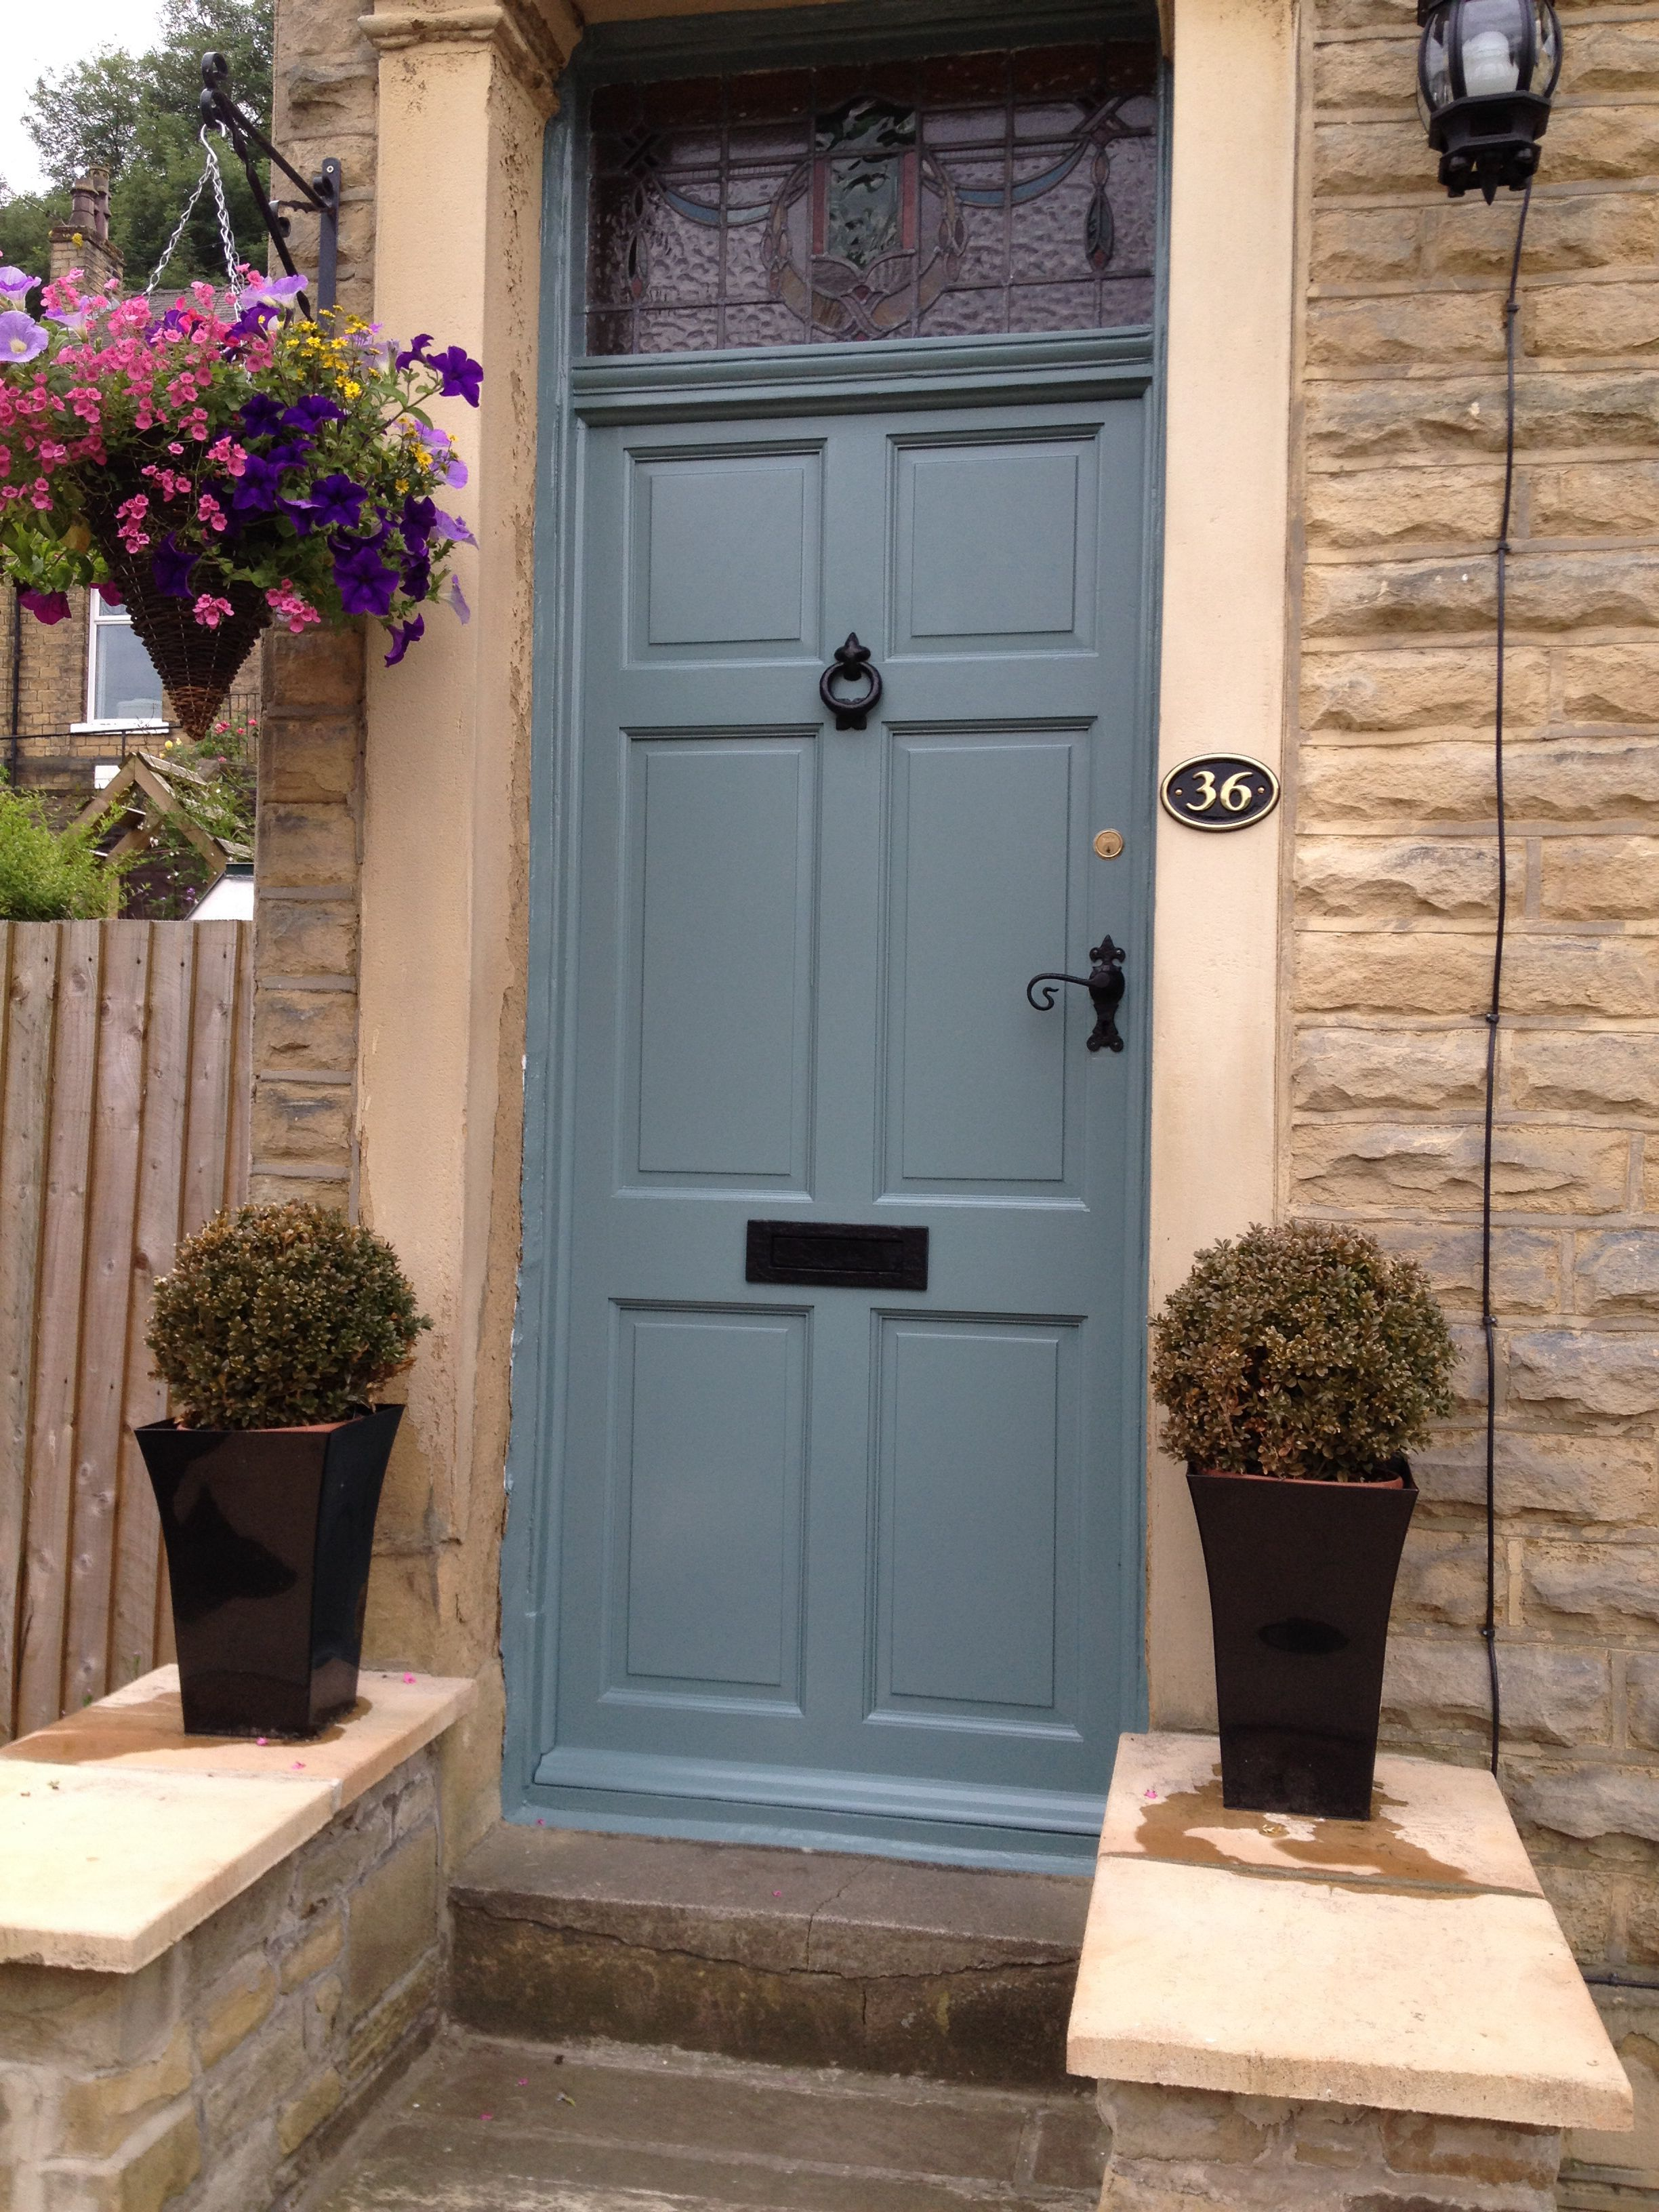 My New Front Door Farrow And Ball Oval Room Blue I Adore This Color Exterior Ideas In